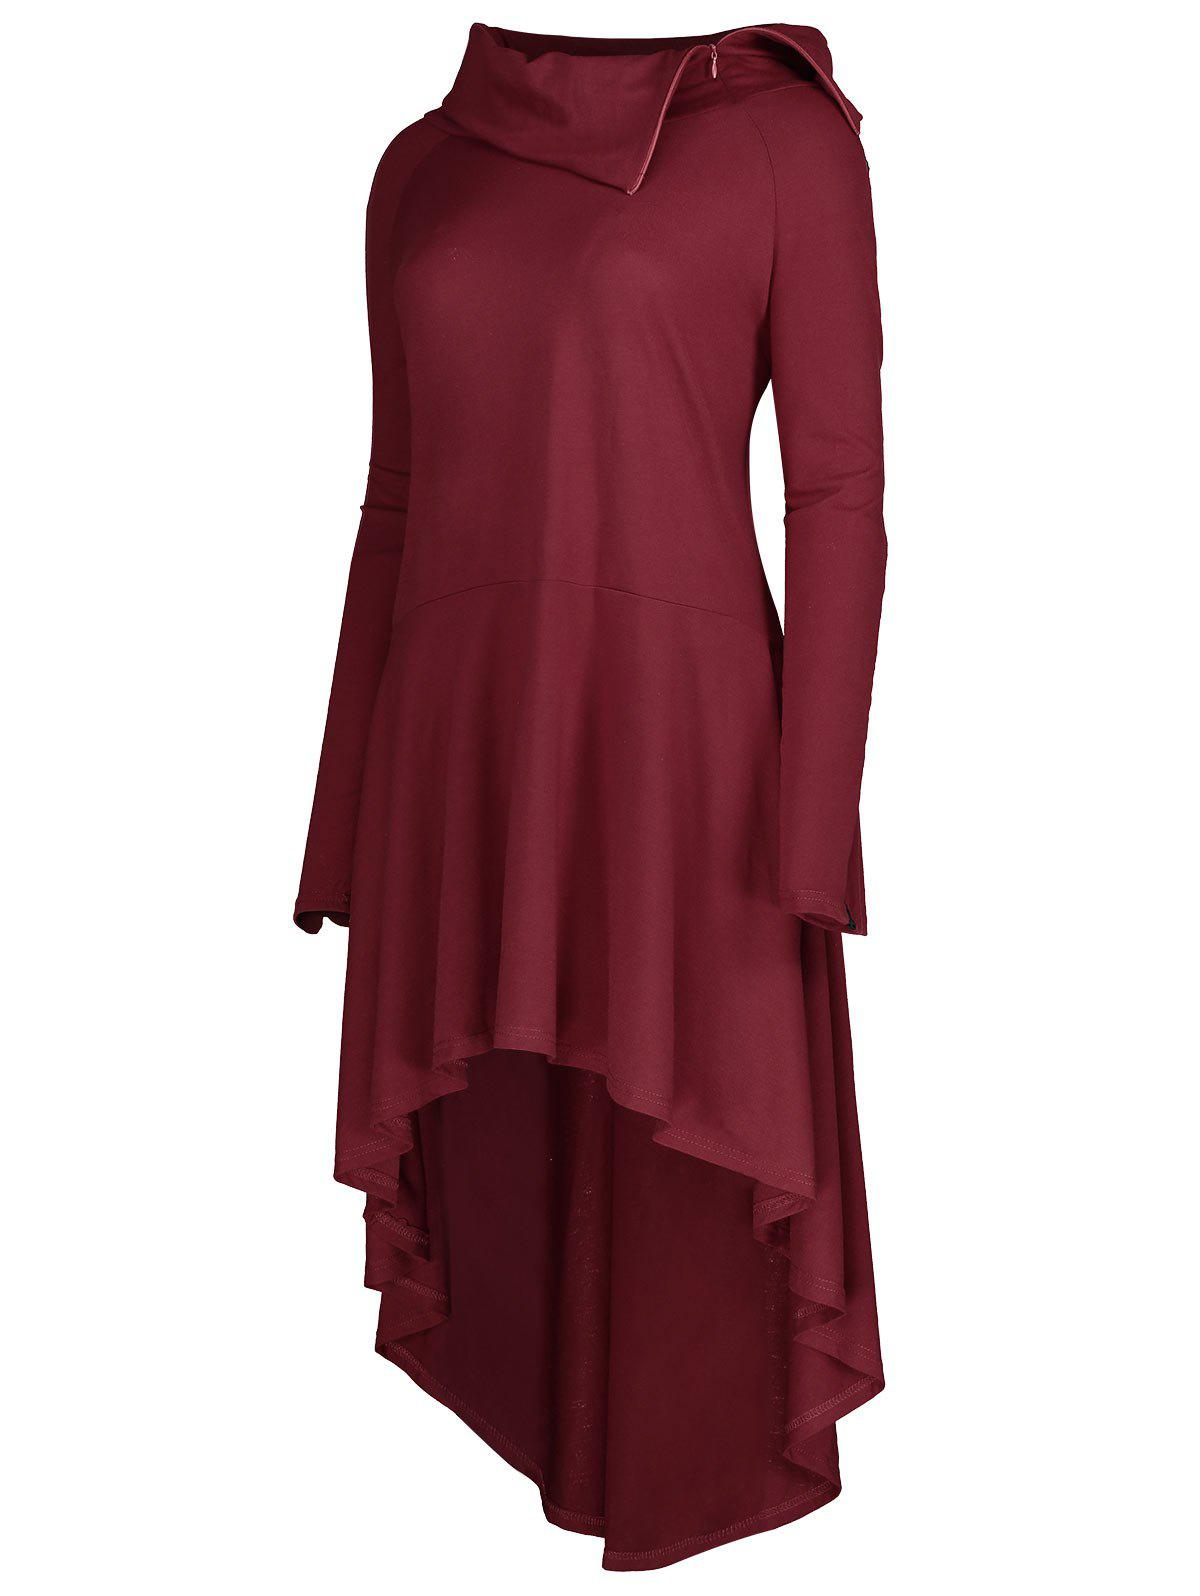 Lapel Plus Size Lace-up High Low HoodieWOMEN<br><br>Size: 3XL; Color: WINE RED; Material: Polyester,Spandex; Shirt Length: X-Long; Sleeve Length: Full; Style: Fashion; Pattern Style: Others; Season: Fall,Spring; Weight: 0.5500kg; Package Contents: 1 x Hoodie;